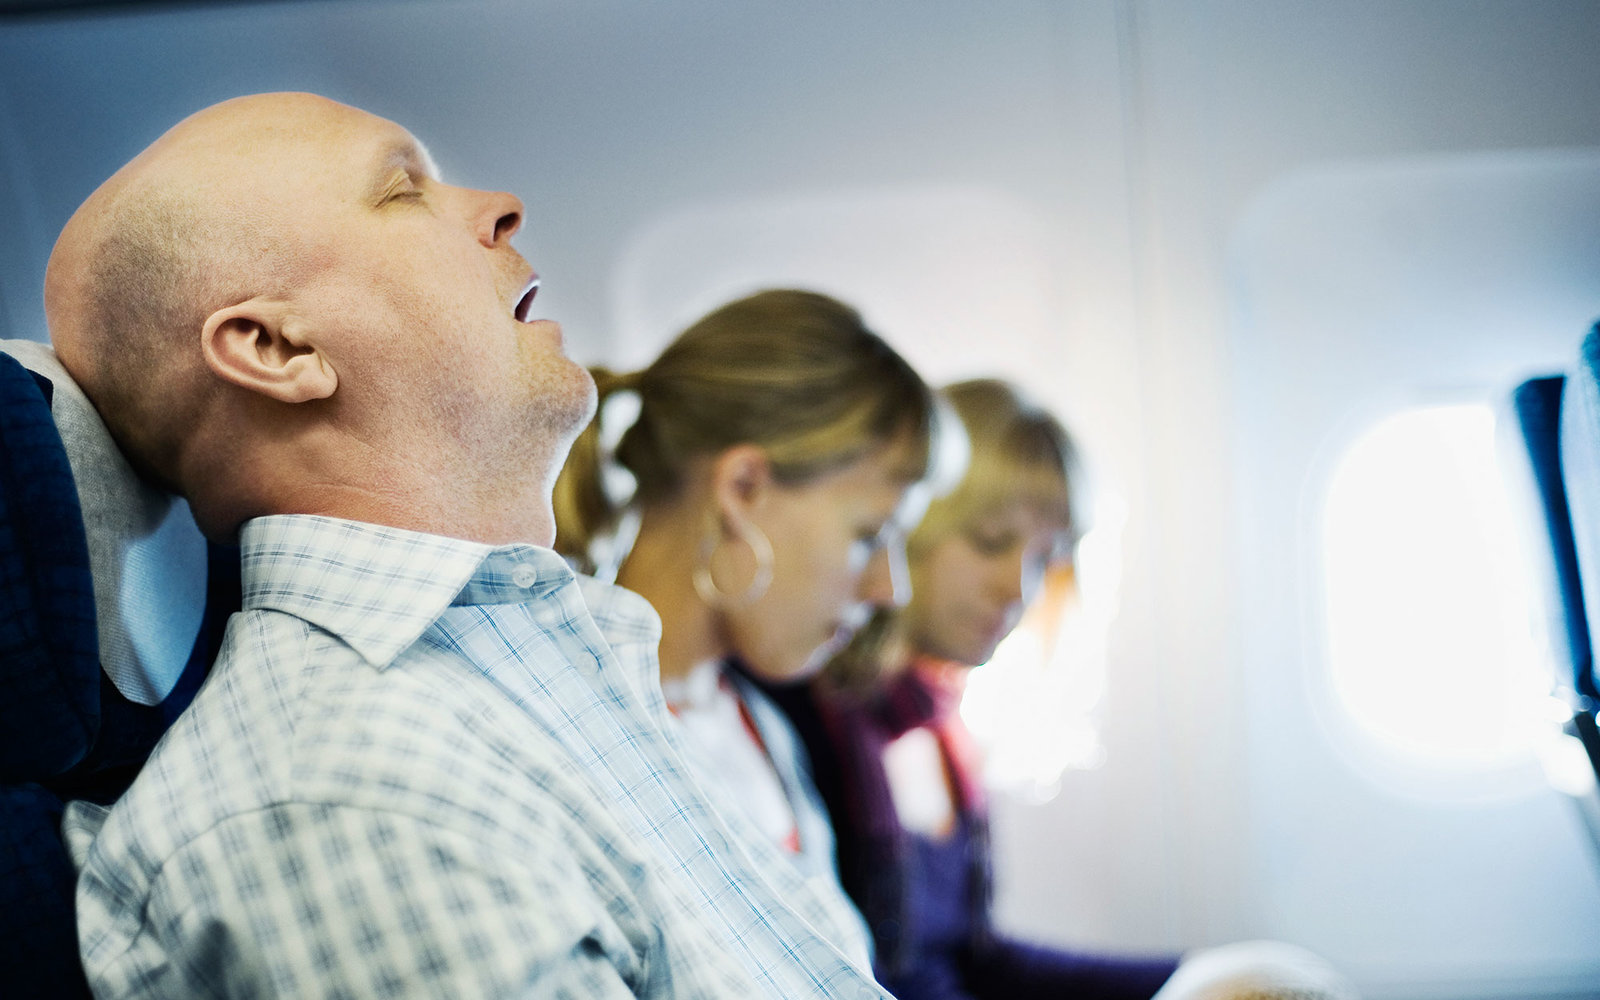 Man sleeping in airplane